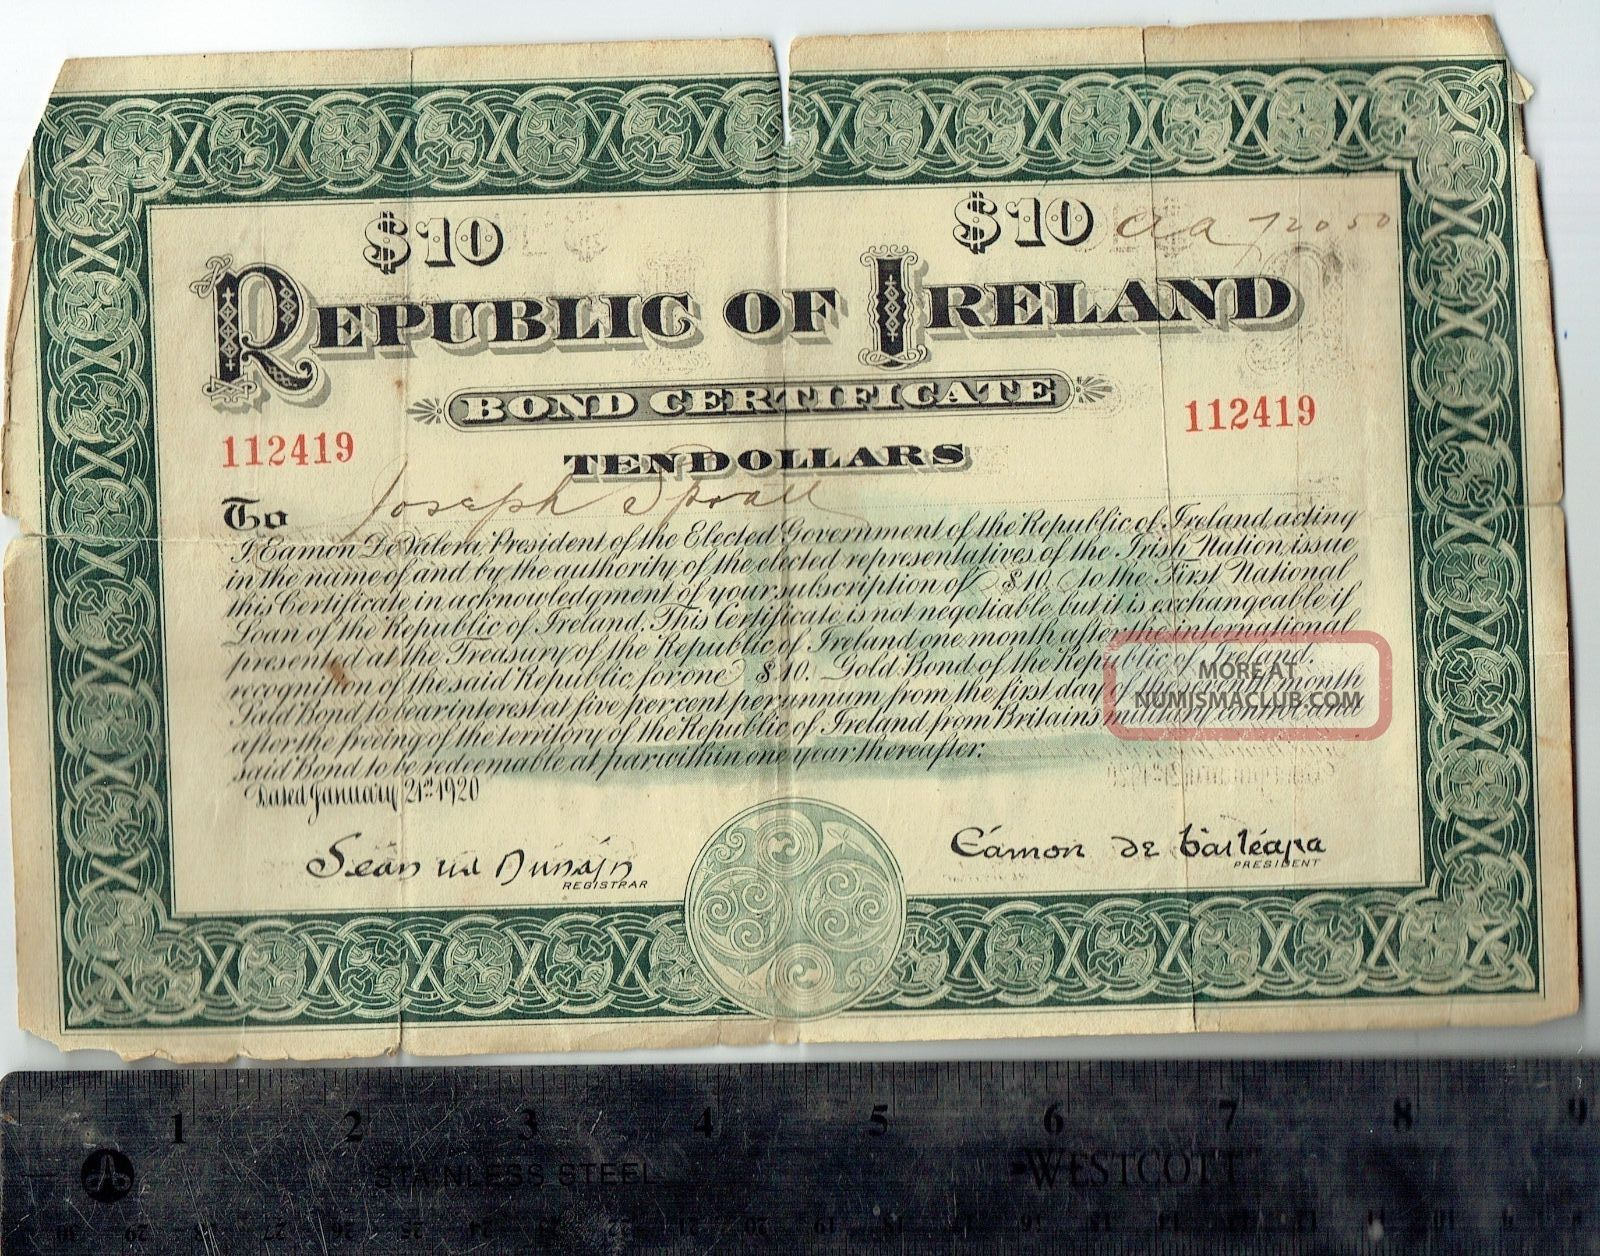 Ireland $10 Bond Certificate Endorsed By Patricia Ann Hurst Eileen Roach Marten Stocks & Bonds, Scripophily photo